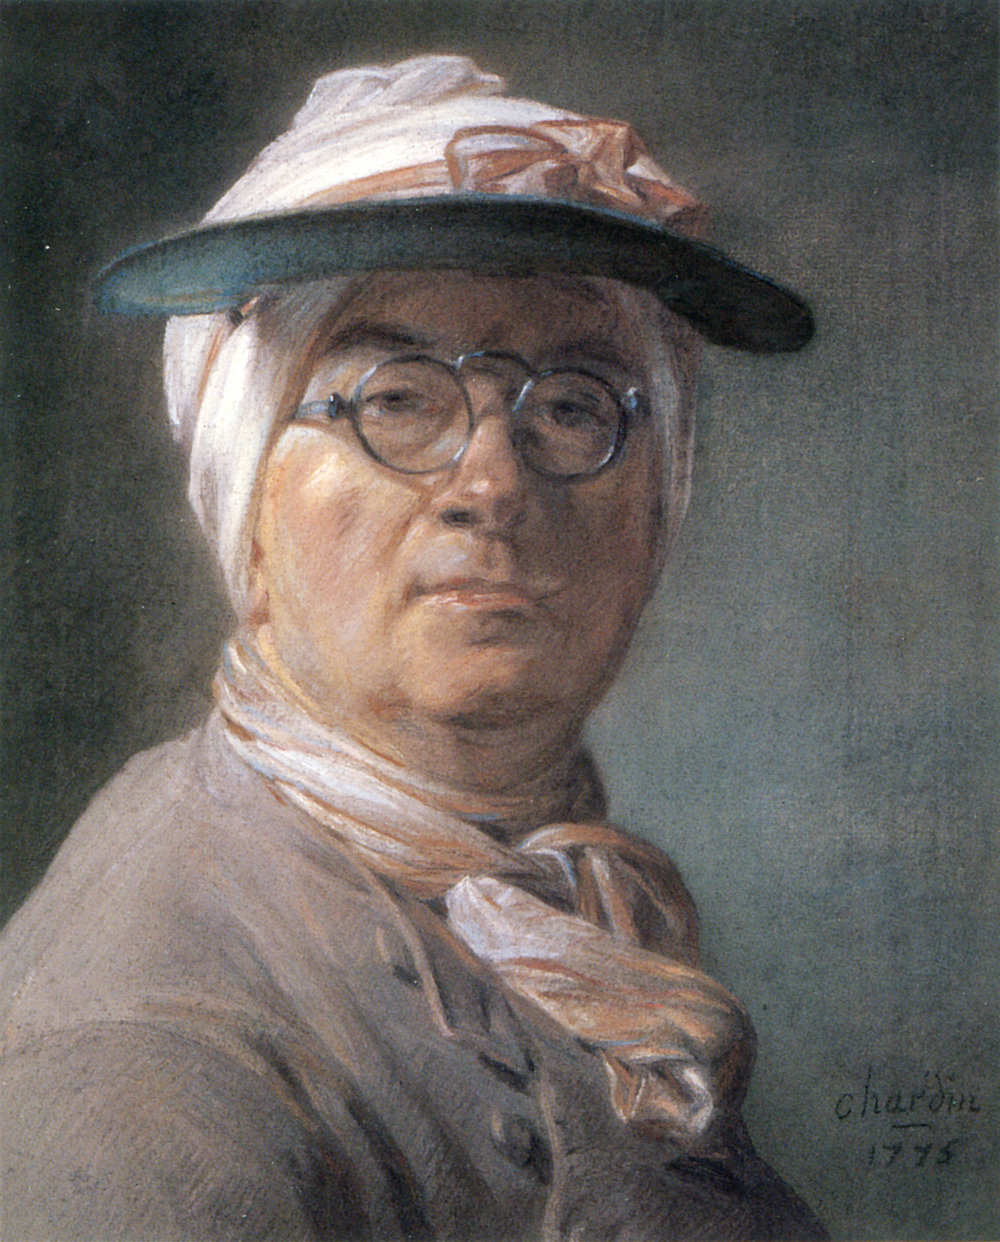 SELF-PORT RAIT WITH GLASSES -- JEAN BAPTISTE SIMÉON CHARDIN, 1775